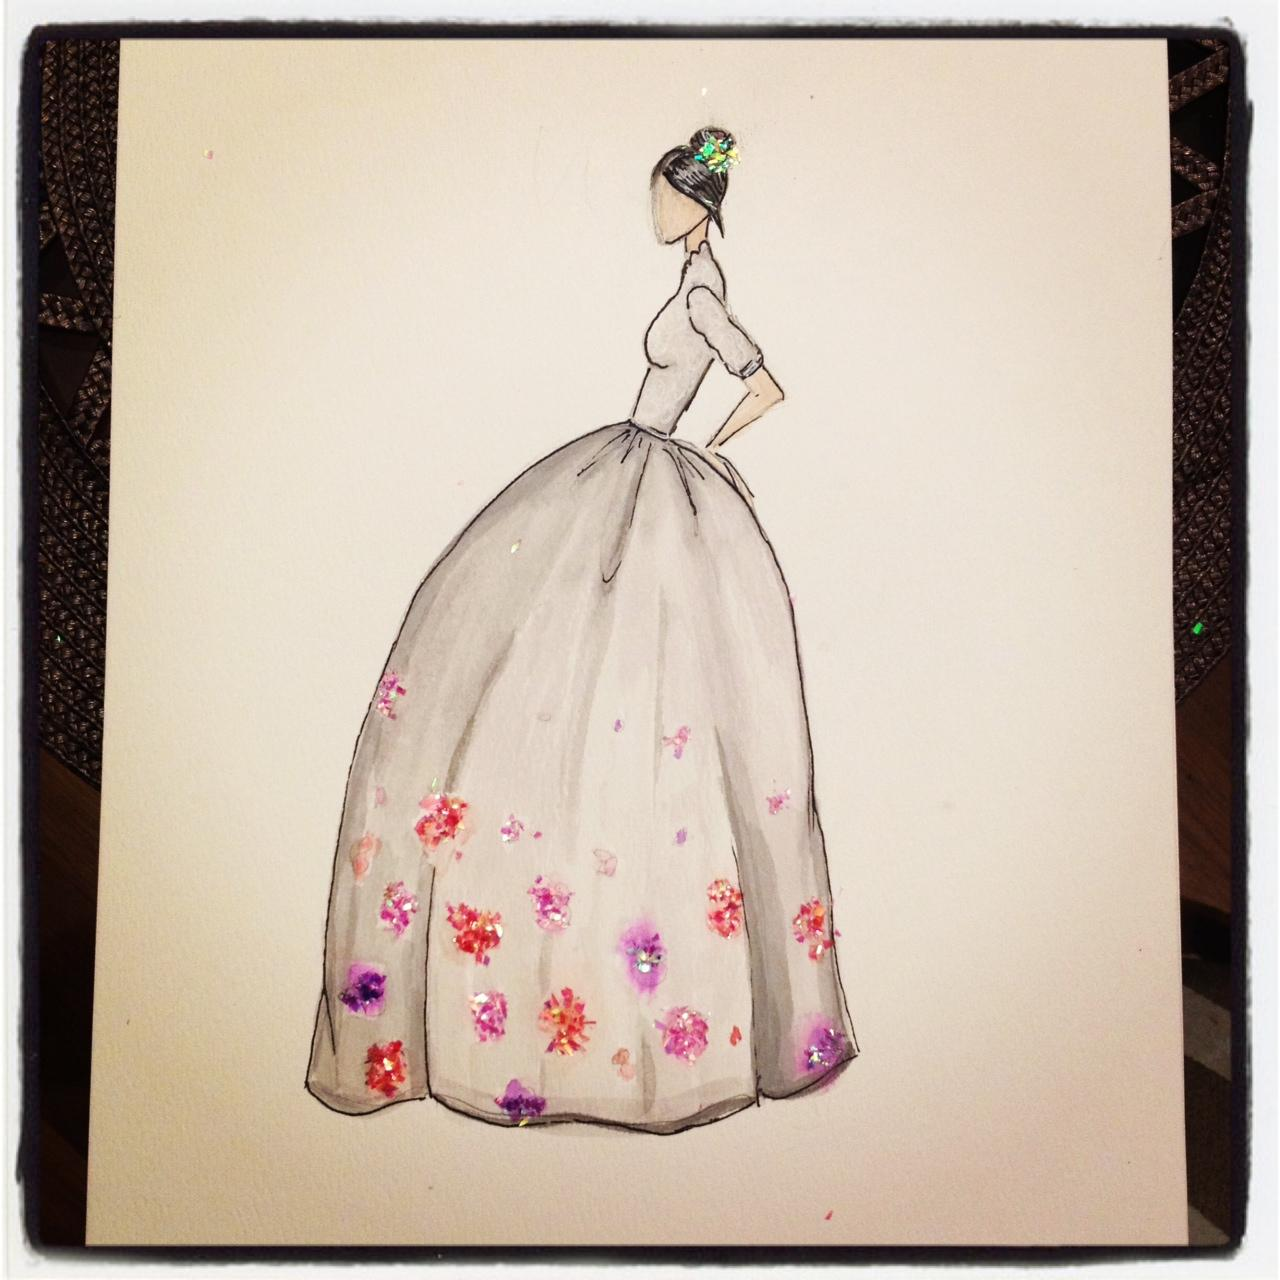 FINAL ~ EMBELLISHED ~ WATERCOLOR ~ SKETCHES ~ Feminine Ways - image 15 - student project